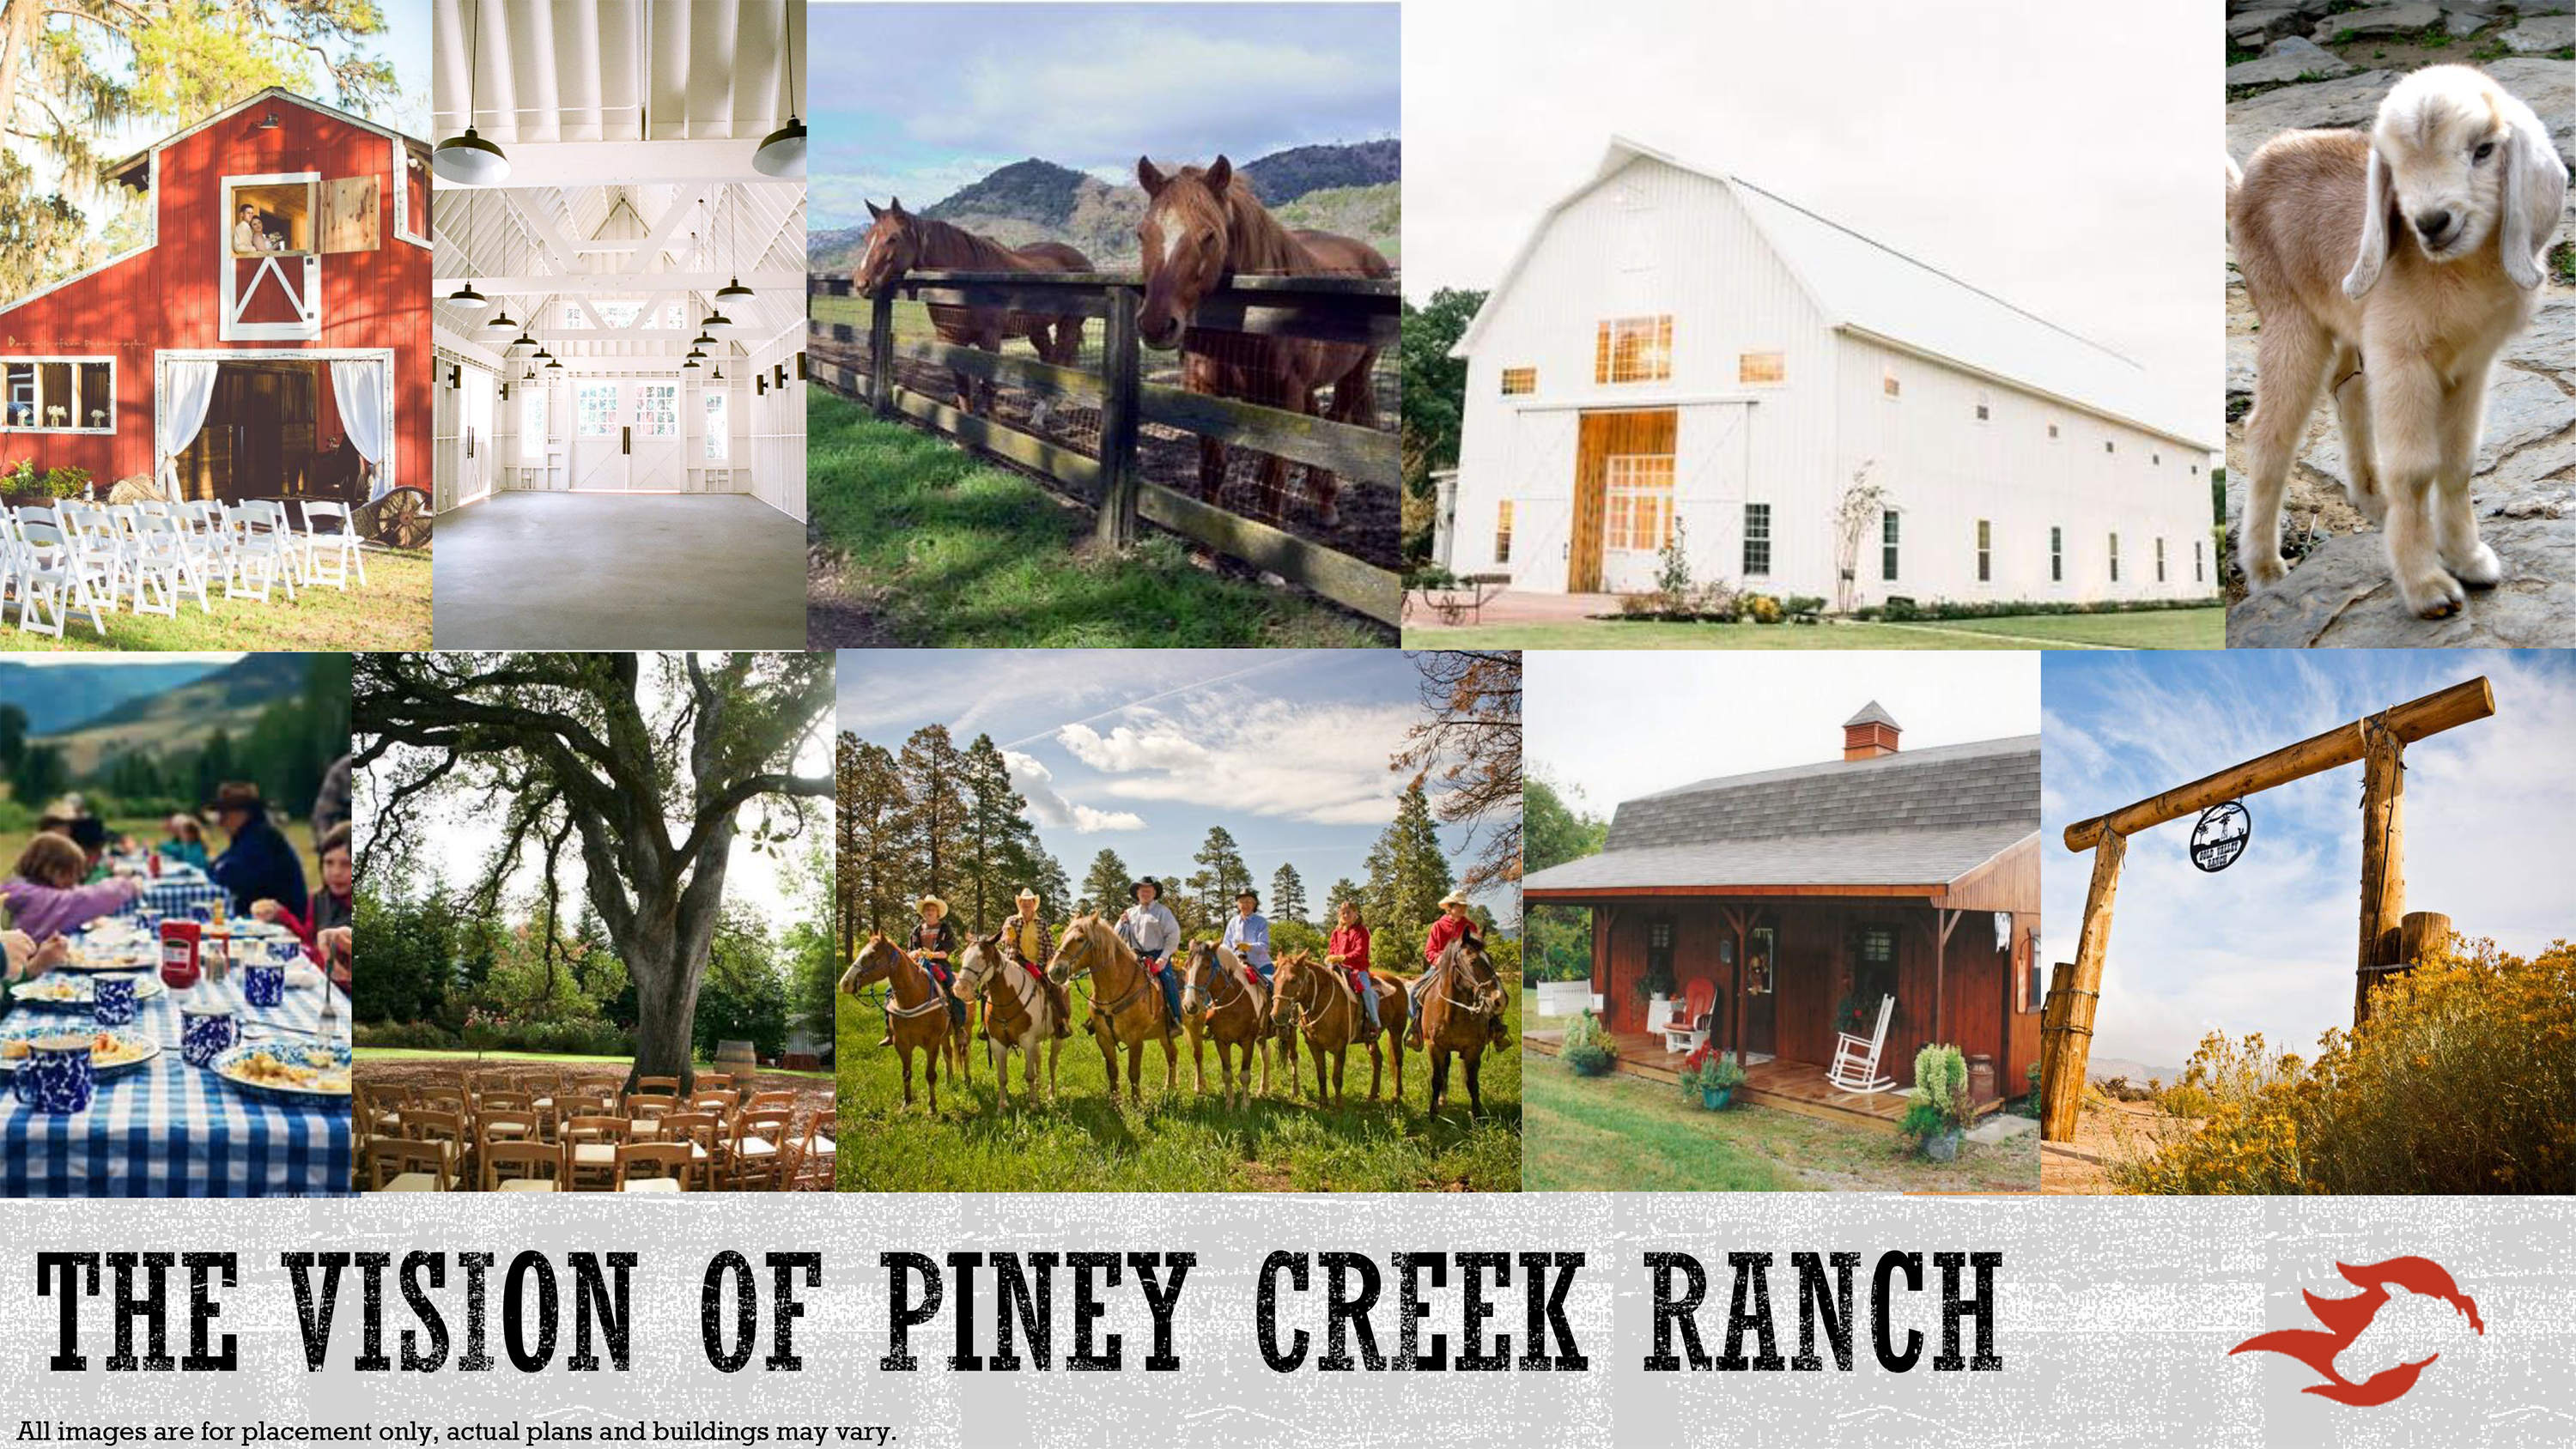 piney creek online dating About piney creek piney creek was developed as four sections over the course of several decades, dating back to the 1970's.